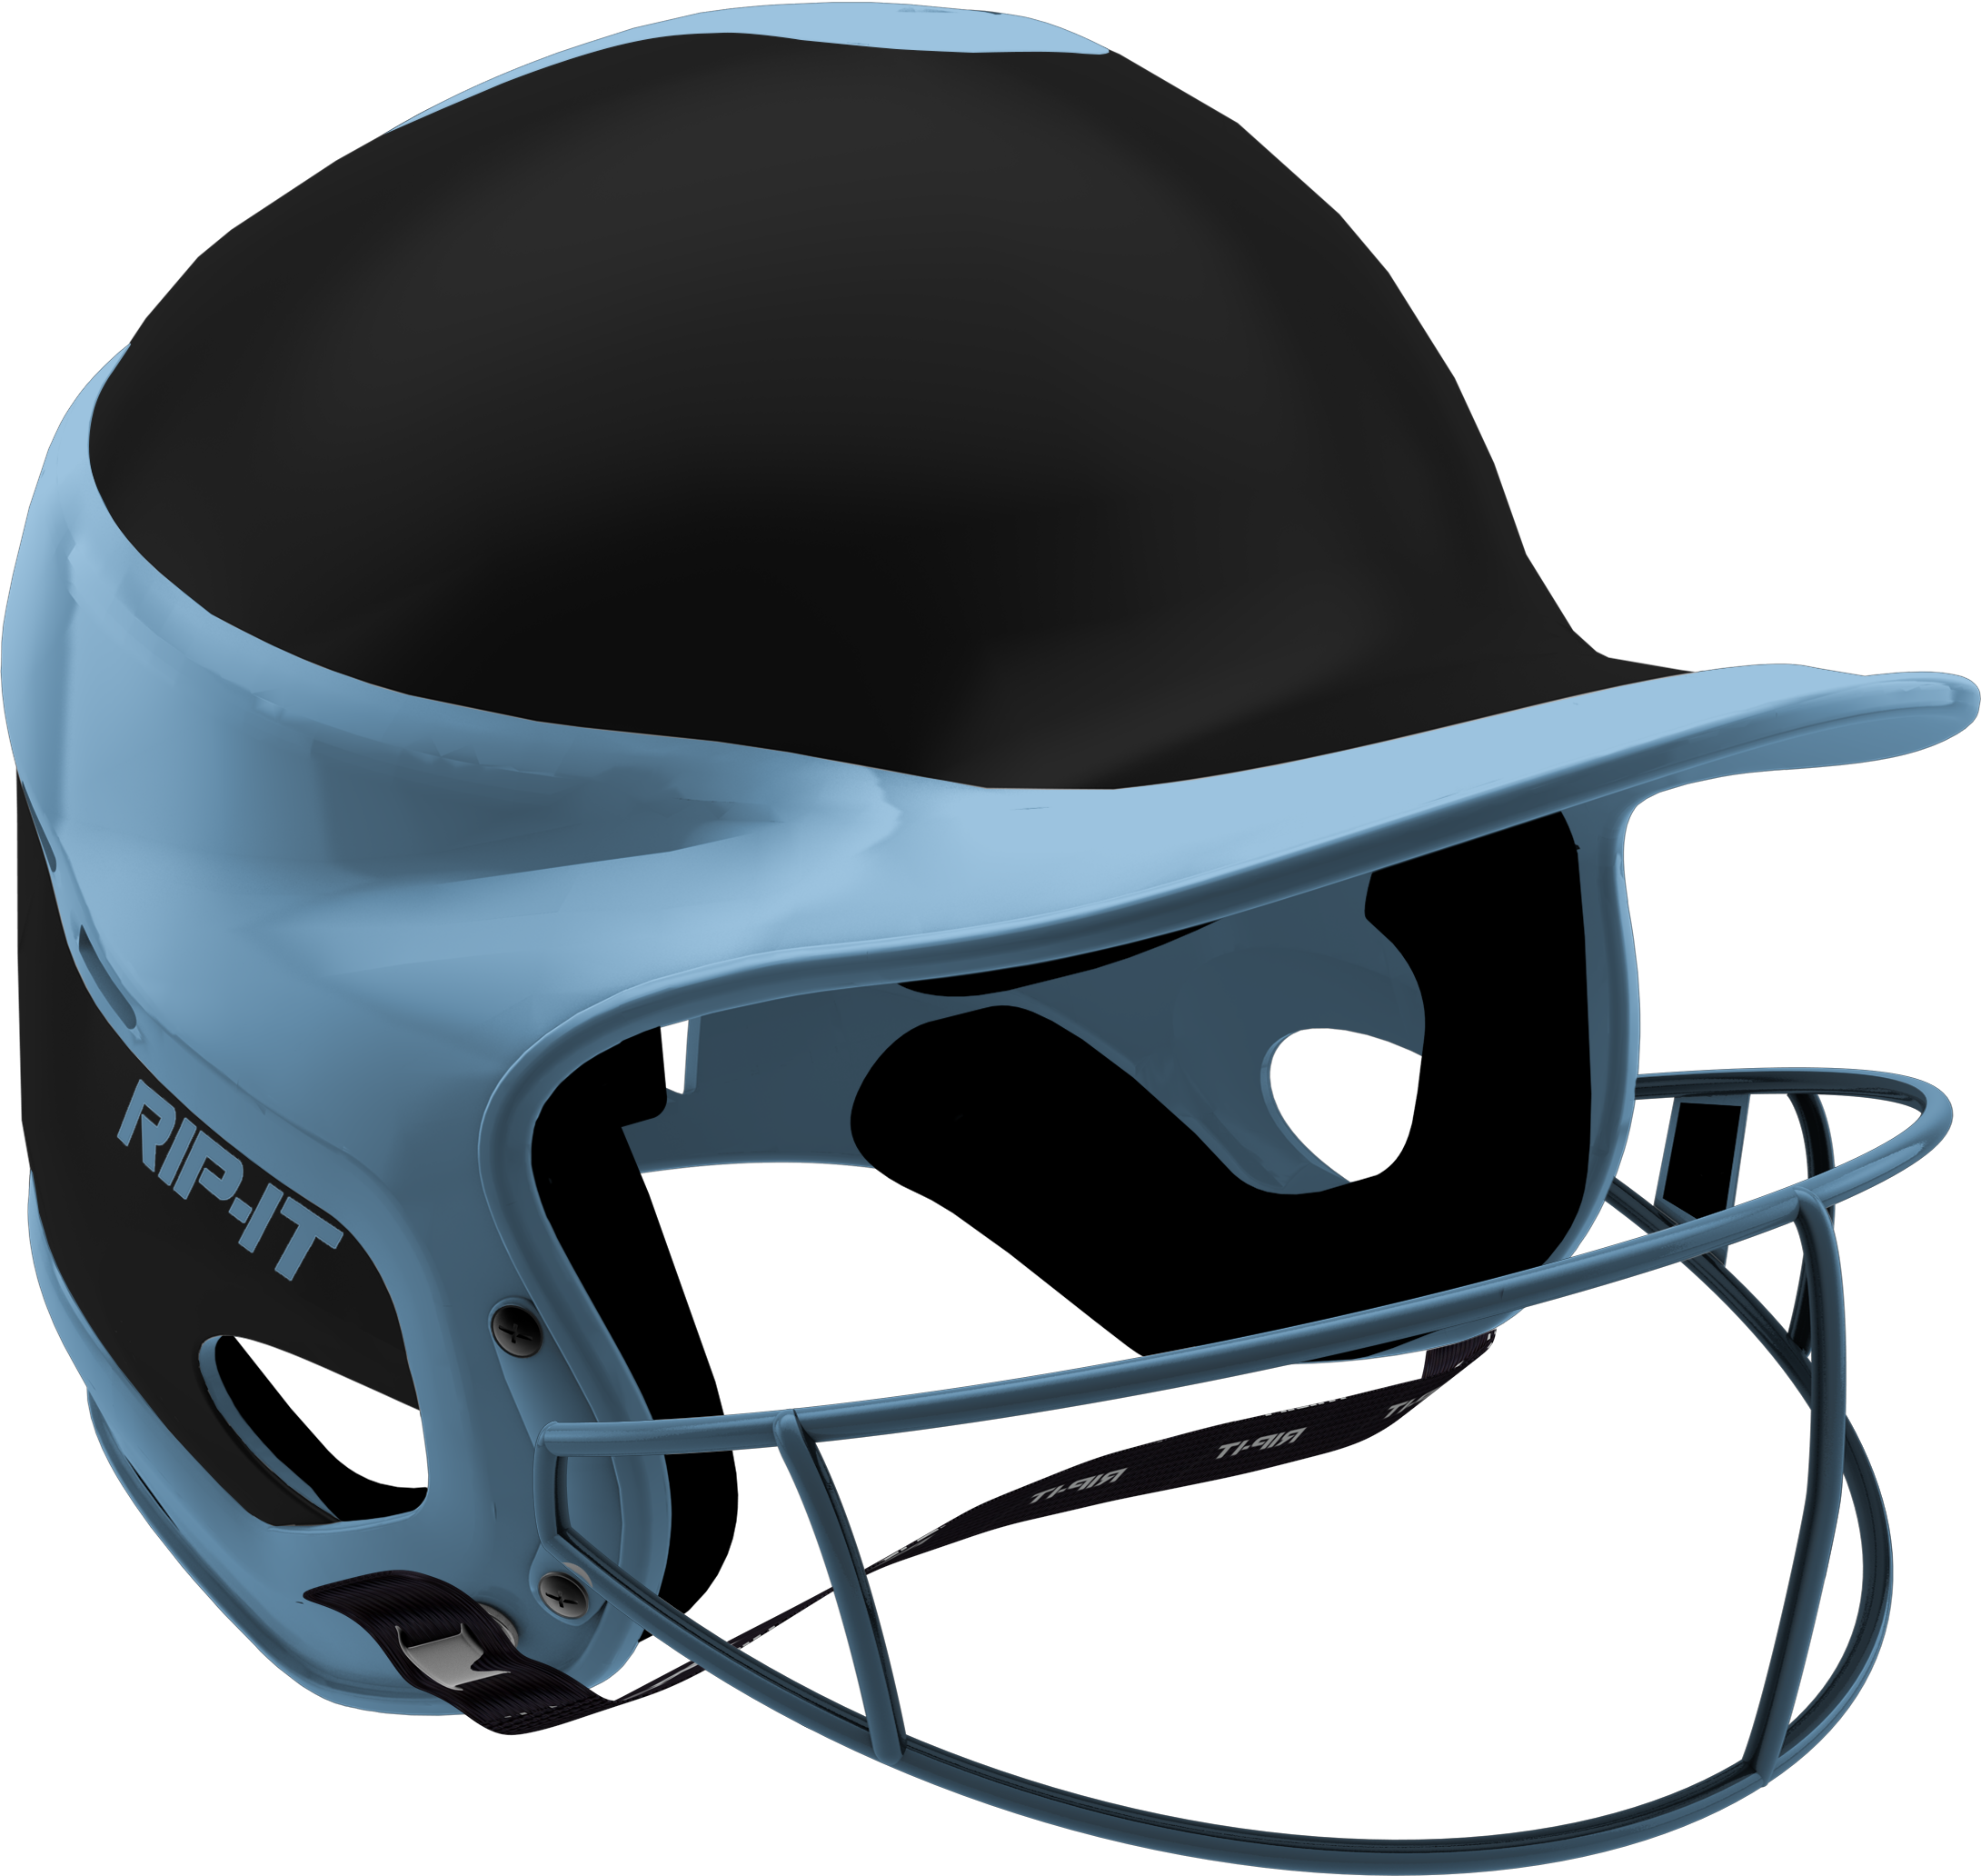 Rip It - Vision Pro Softball Helmets